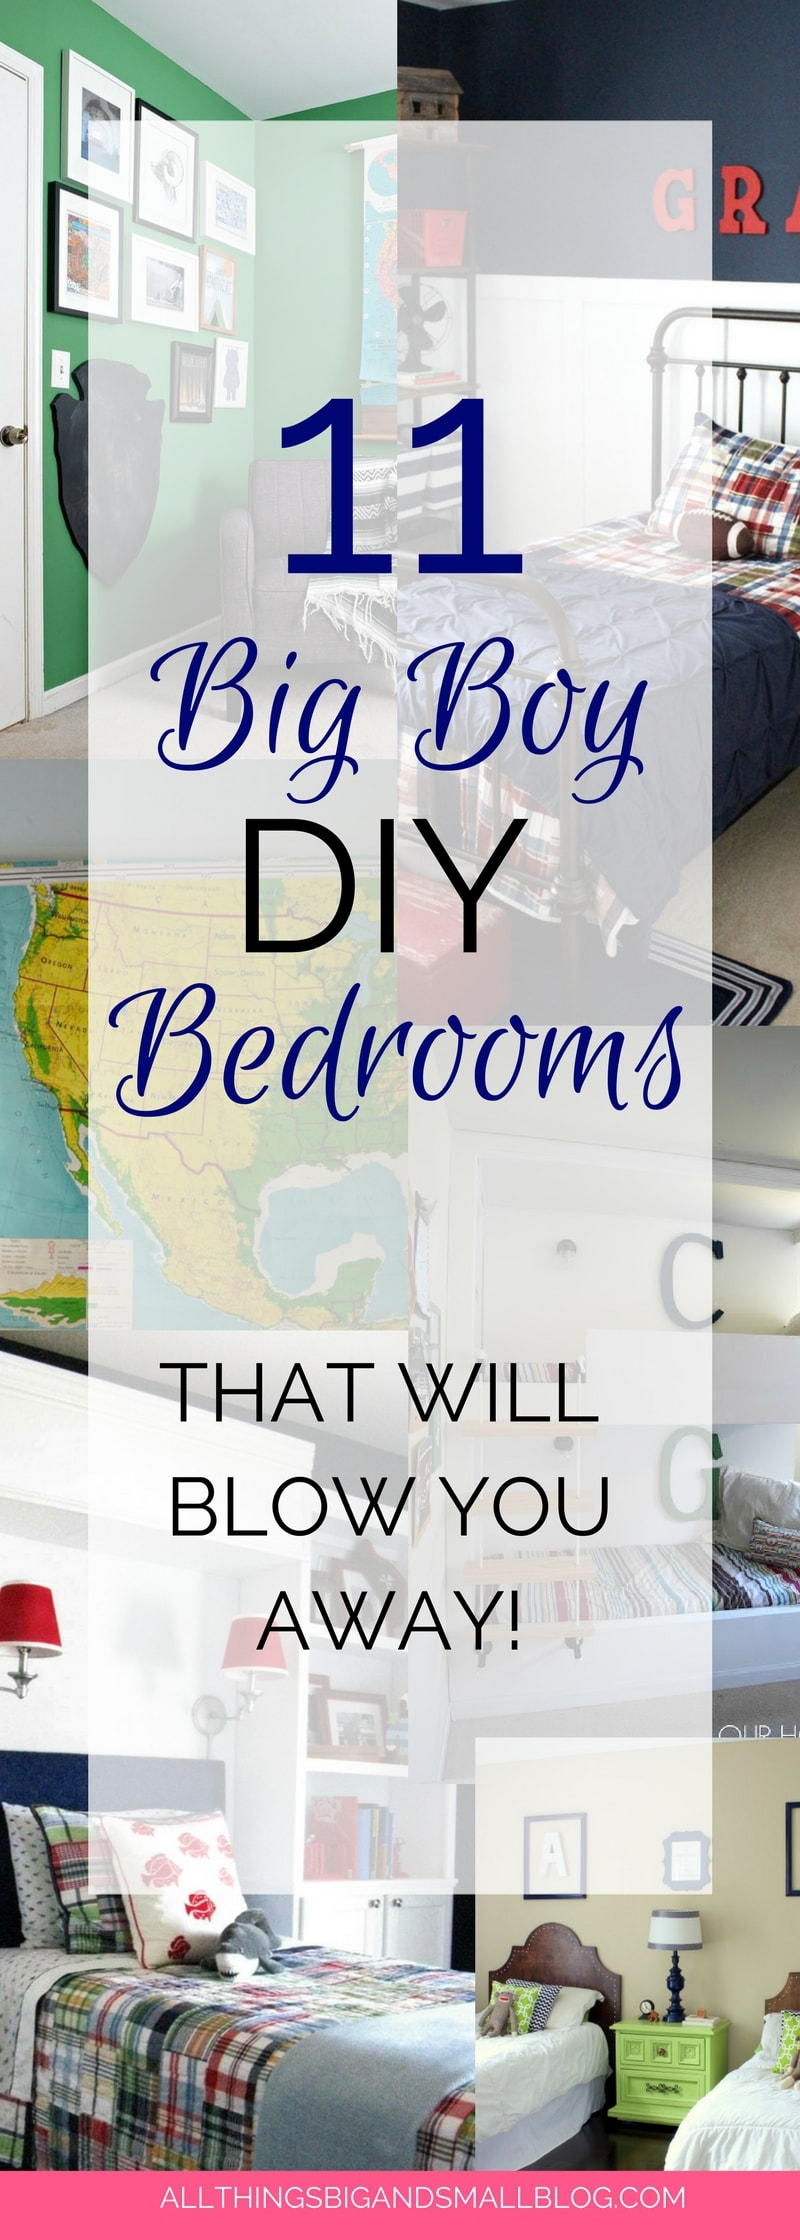 Boy Rooms | Big Boy Rooms | Amazing DIY Boy Rooms | DIY Big Boy Rooms | Blogger's Best Big Boy Rooms | Roundup by All Things Big and Small Blog